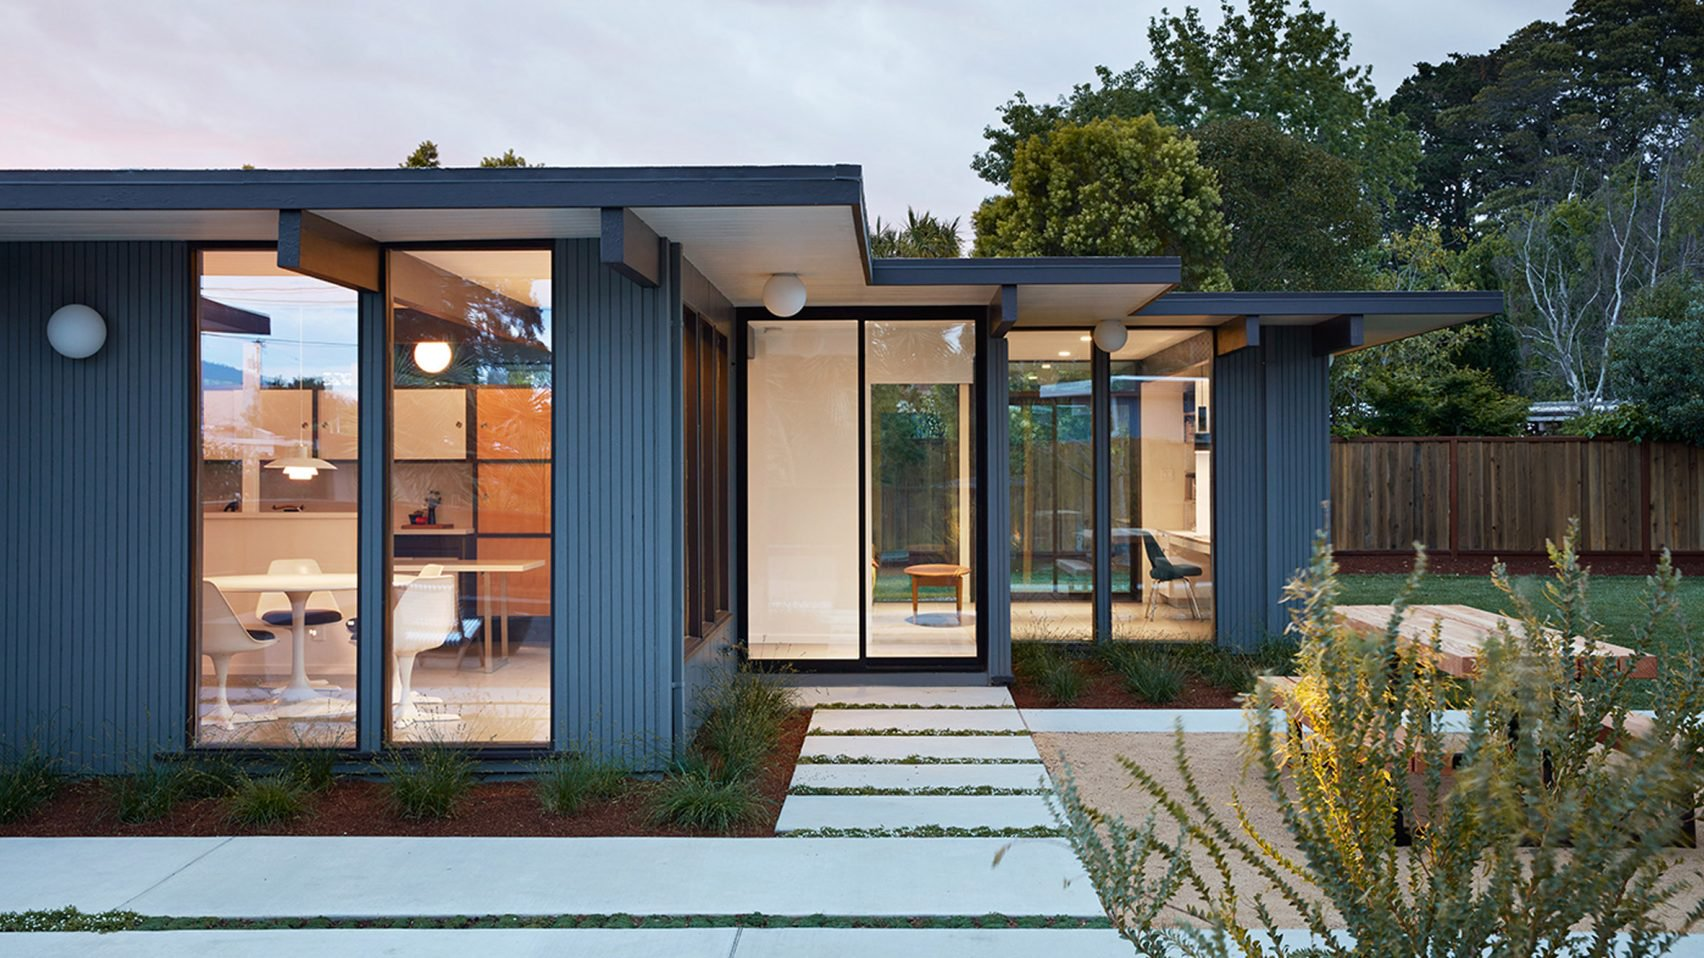 Eichler home renovated, expanded